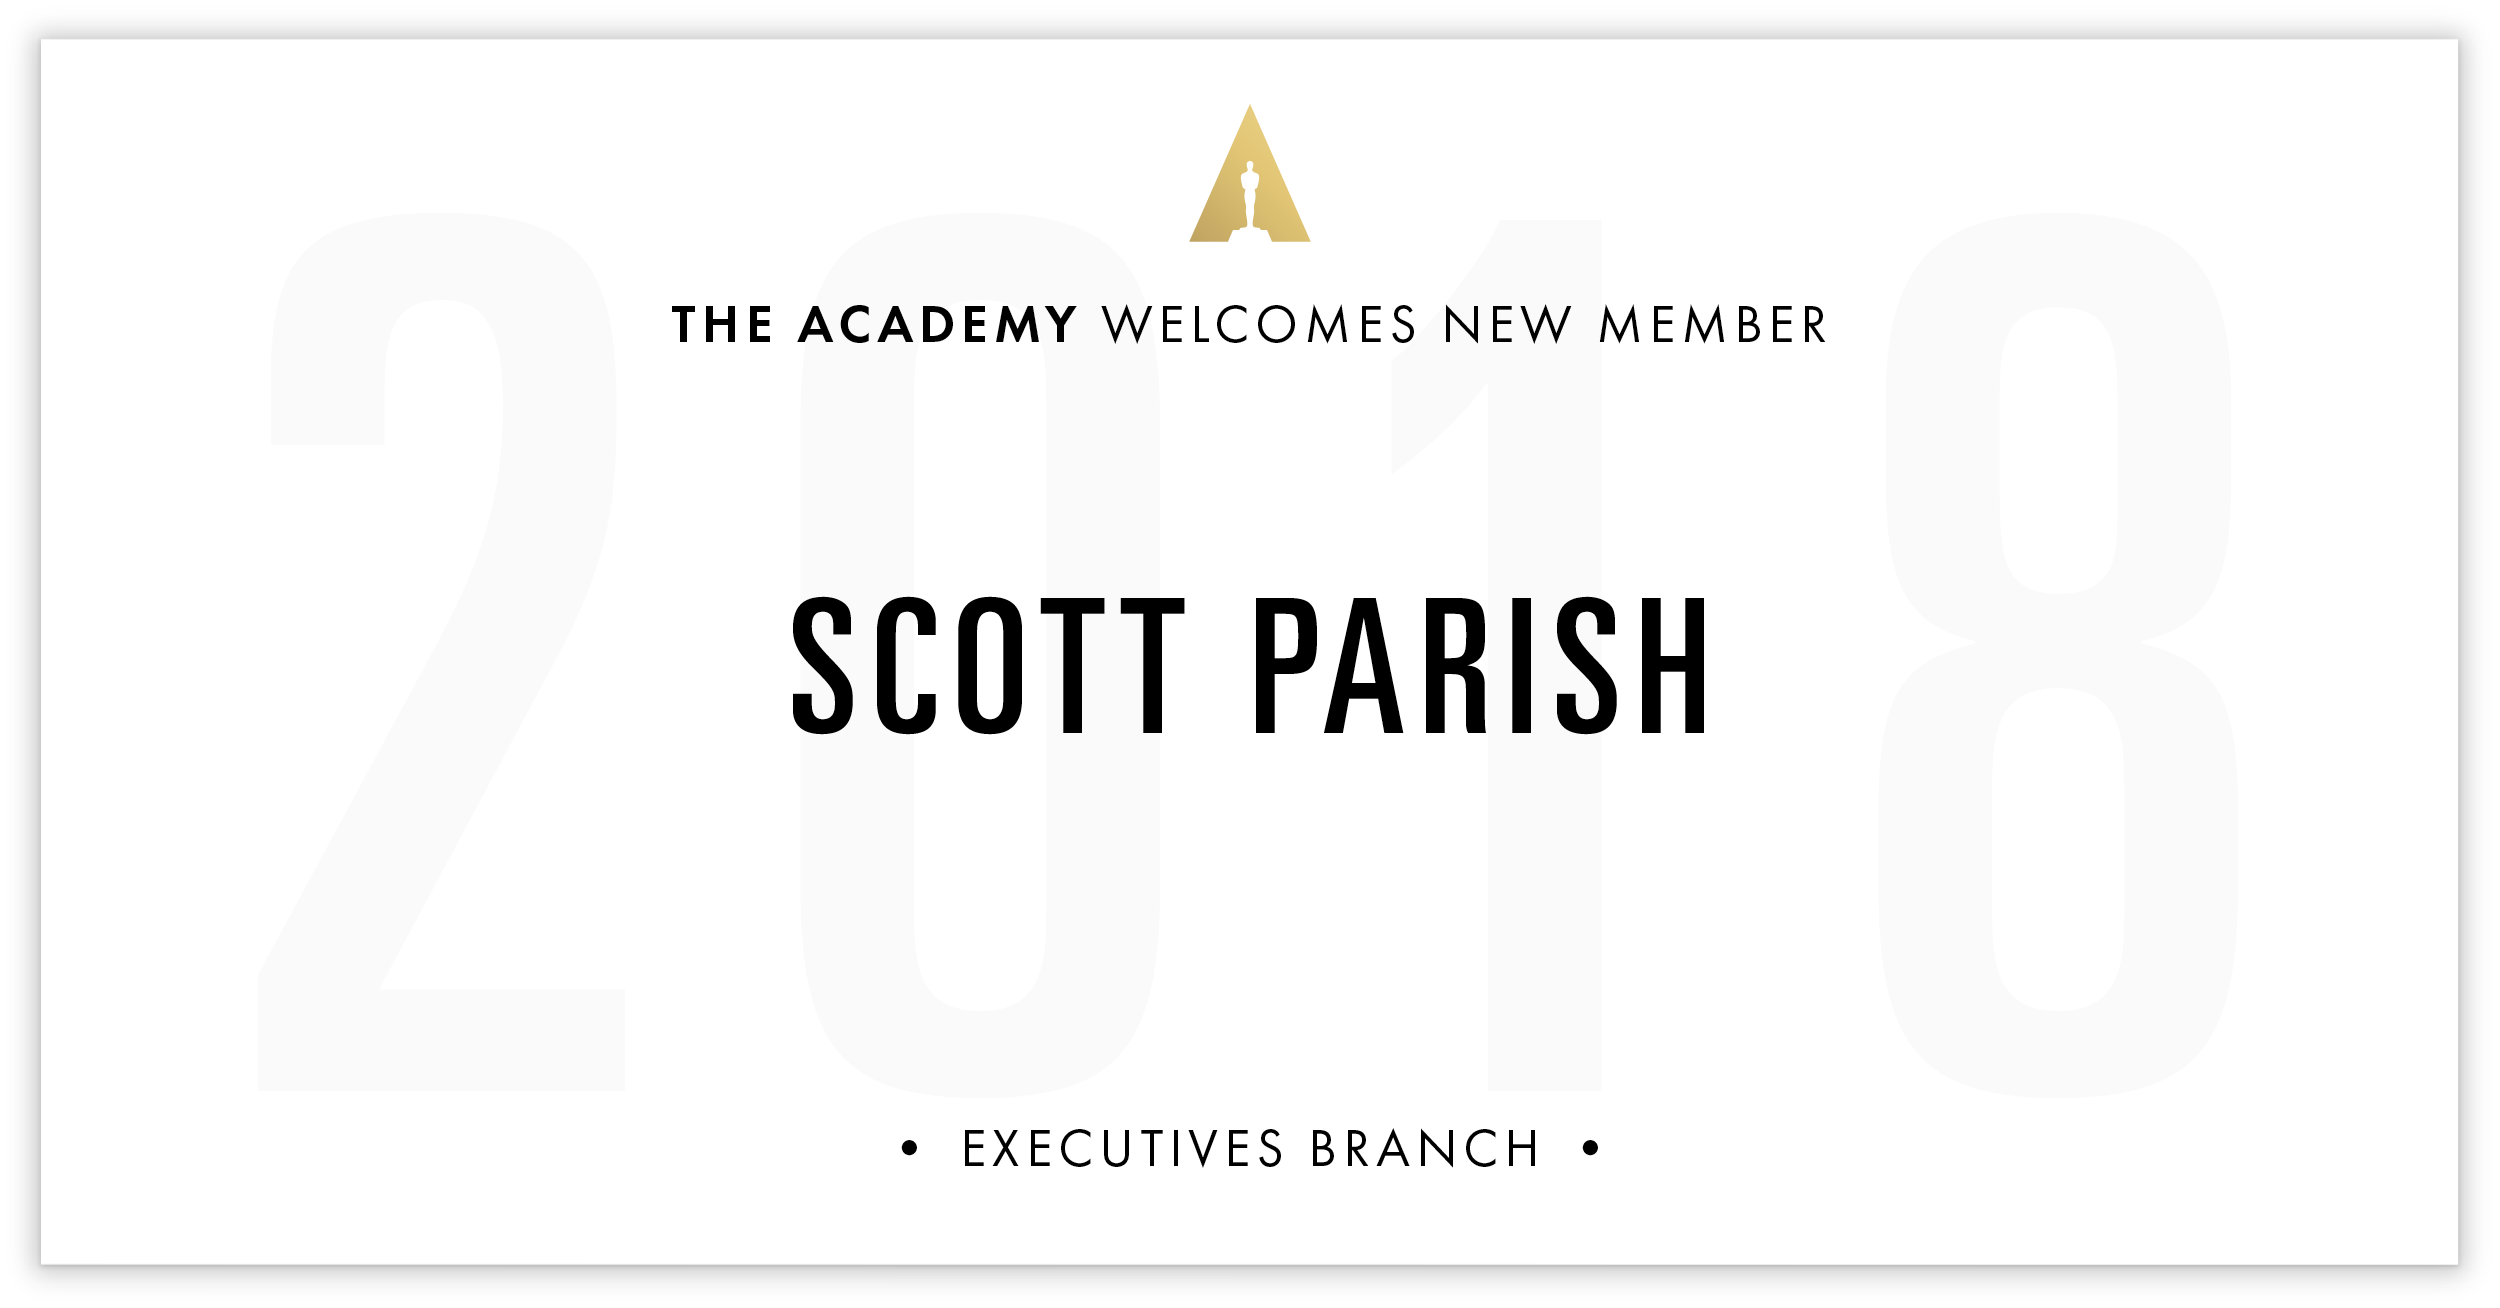 Scott Parish is invited!